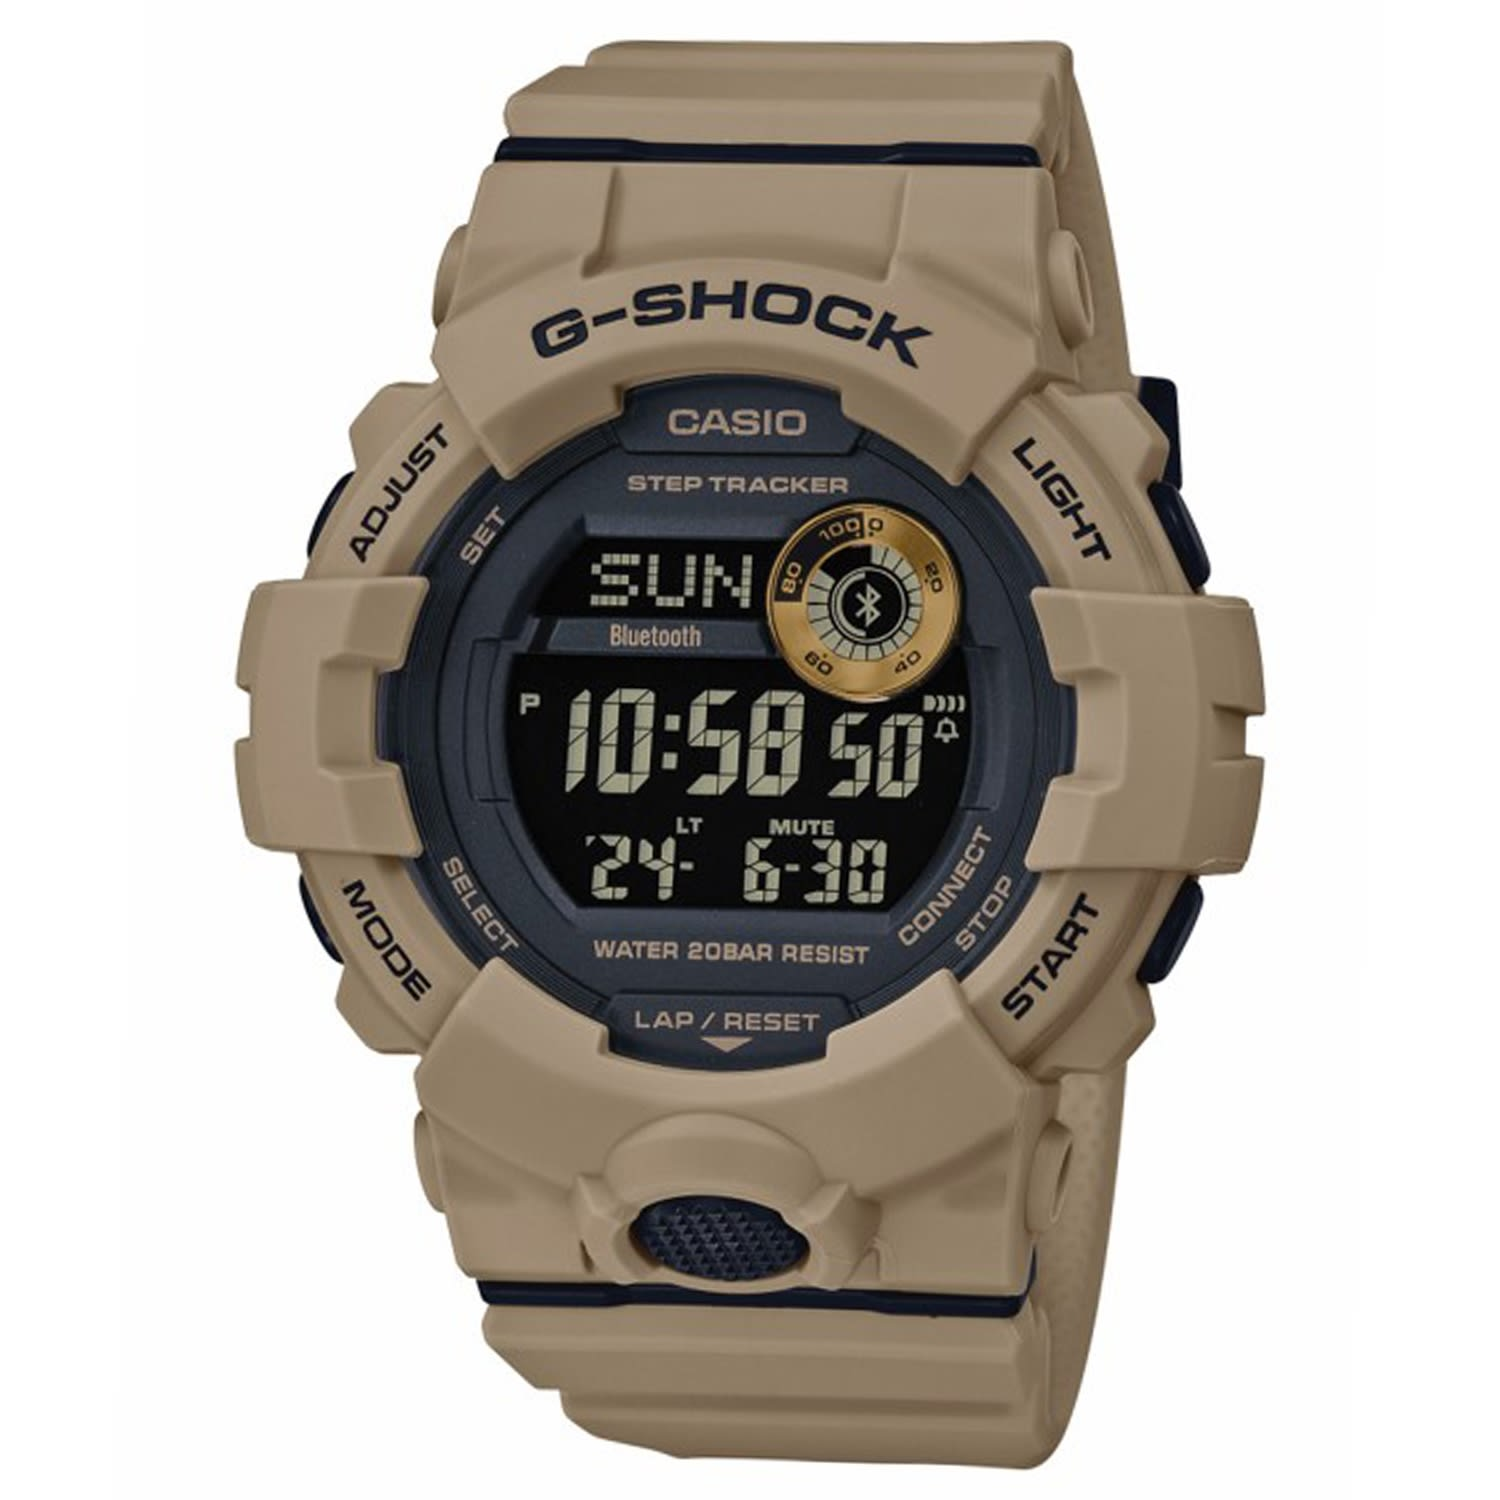 Casio G-Shock Watch Illuminator GBD 800 -5DR